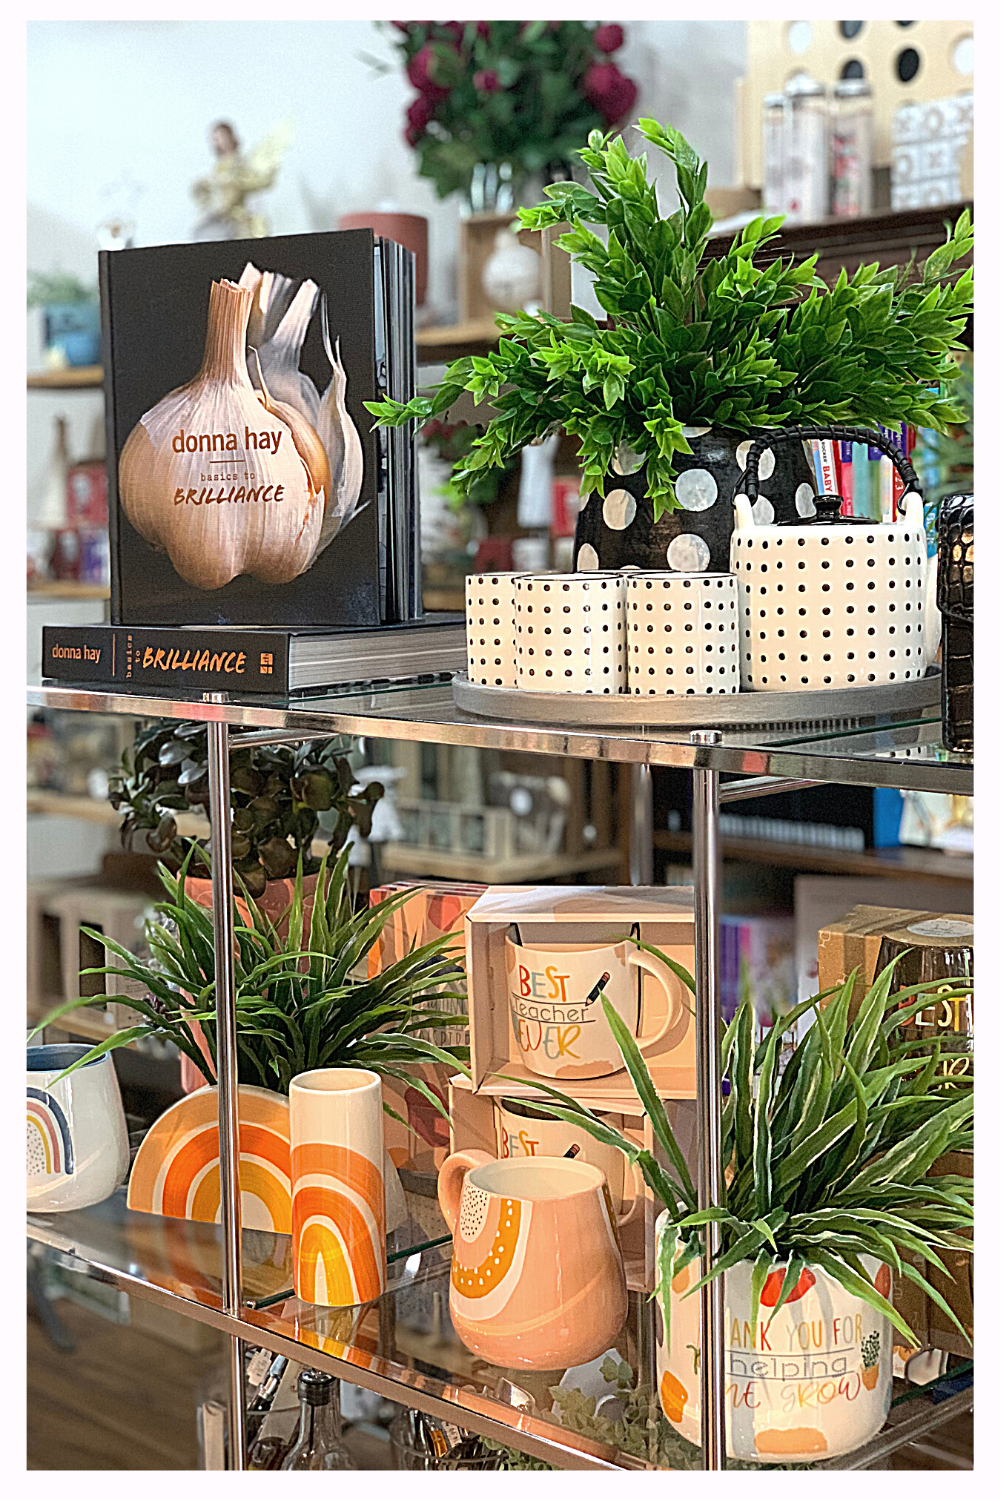 We have gifts for all the wonderful people in your life! Teachers, teens, KK's and more... #casualstep #gifts #giftsforteacher #gifts #giftideas #ideas #planter #desk #cookbook #recipe #donnahay #ourstore #giftsunder40 #gifts #giftsforher #giftshop #giftsforhim #GIFTSET #giftsformum #giftsets #giftstore #giftsforgirls #giftsideas #giftsforwomen #giftshops #giftshopping #giftsthatgive #giftsforyou #giftsforeveryone #giftsforall #giftsforguys #giftseason #giftsforfriends #giftsgalore